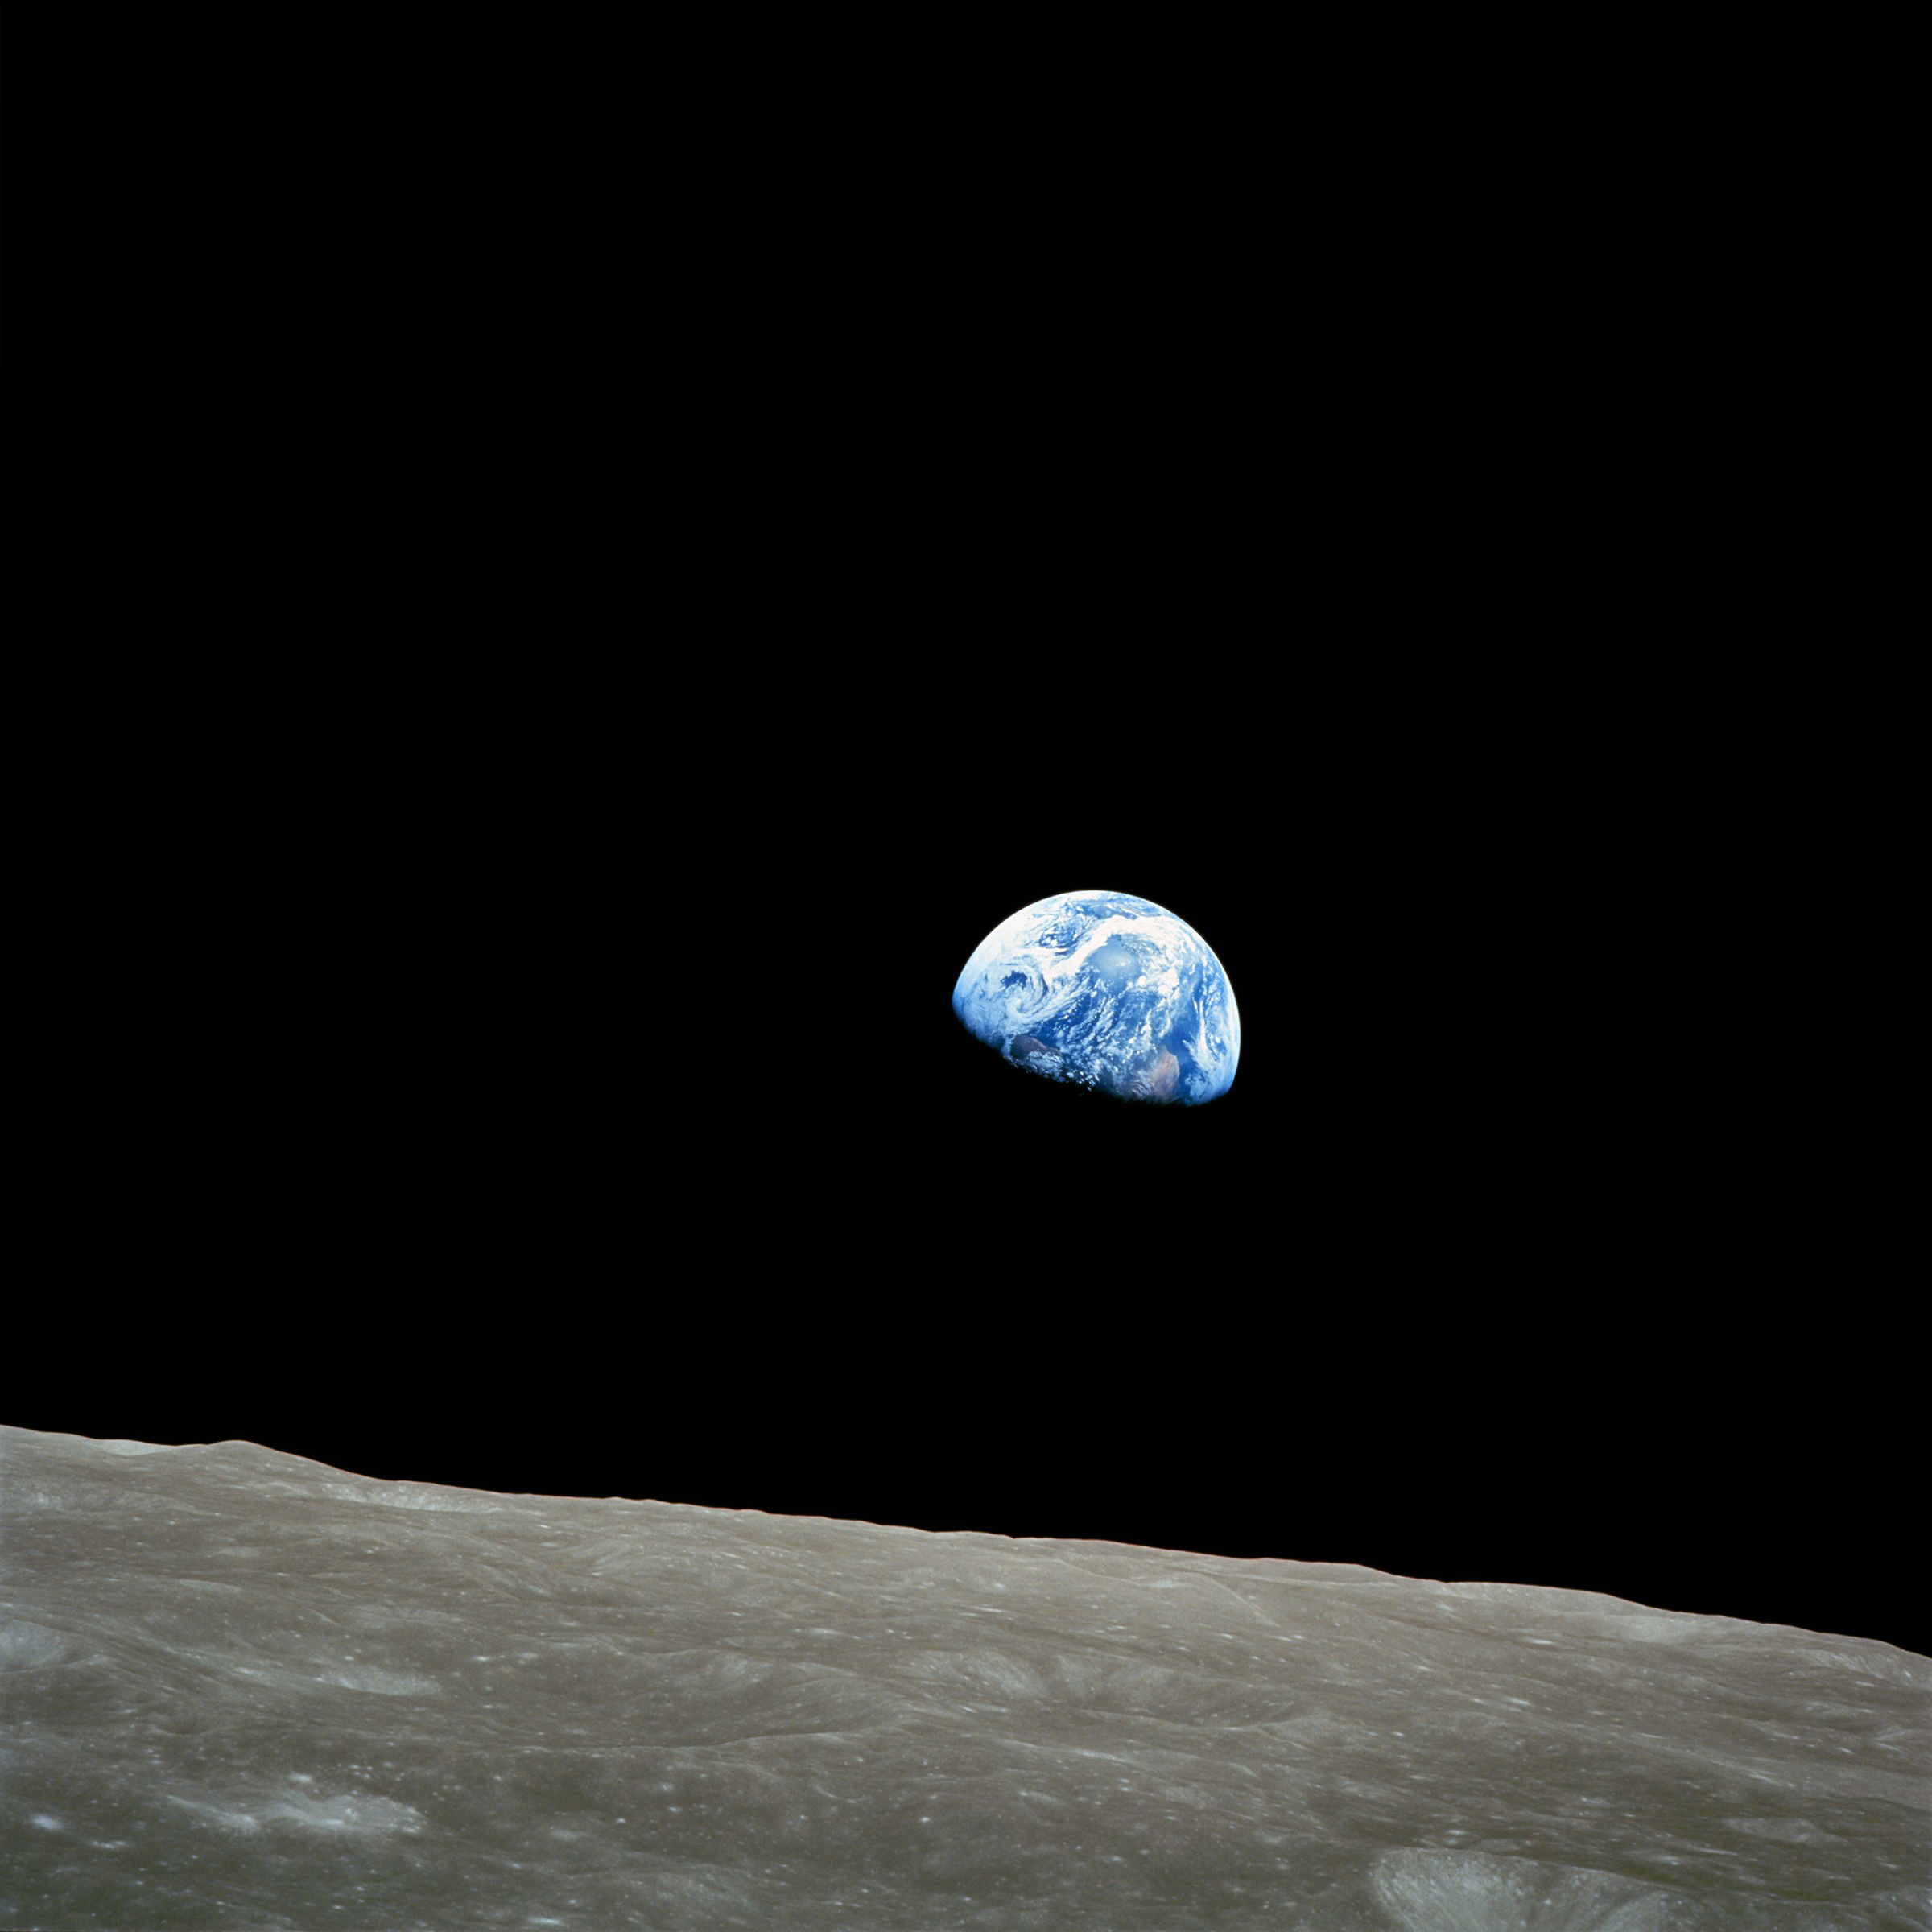 https://i2.wp.com/upload.wikimedia.org/wikipedia/commons/a/a8/NASA-Apollo8-Dec24-Earthrise.jpg